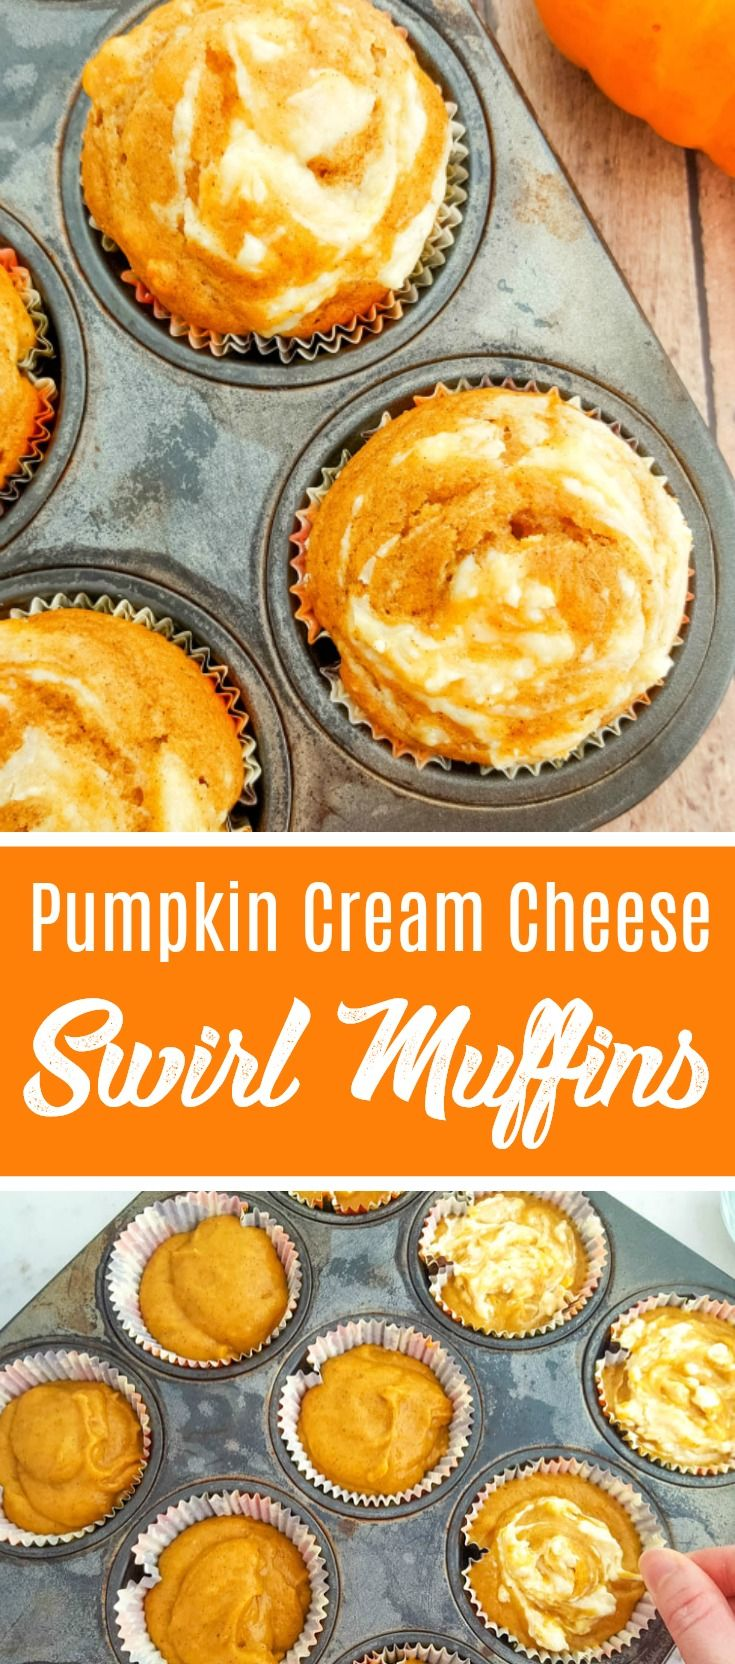 Pumpkin Cream Cheese Swirl Muffins Recipe - All the flavors of fall for breakfast or dessert!